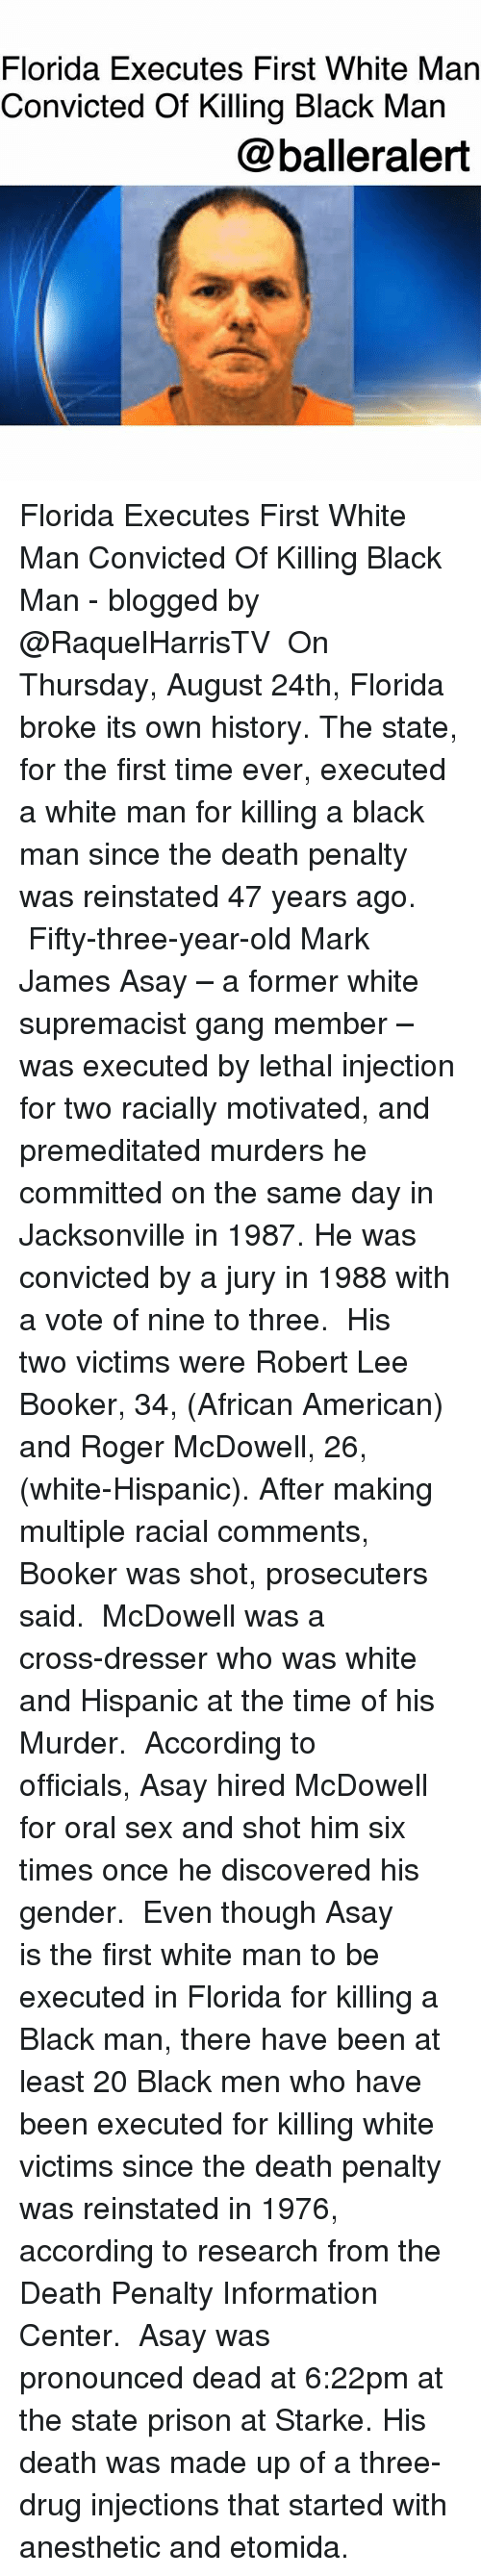 Memes, Roger, and Sex: Florida Executes First White Man  Convicted Of Killing Black Man  @balleralert Florida Executes First White Man Convicted Of Killing Black Man - blogged by @RaquelHarrisTV ⠀⠀⠀⠀⠀⠀⠀ On Thursday, August 24th, Florida broke its own history. The state, for the first time ever, executed a white man for killing a black man since the death penalty was reinstated 47 years ago. ⠀⠀⠀⠀⠀⠀⠀ Fifty-three-year-old Mark James Asay – a former white supremacist gang member – was executed by lethal injection for two racially motivated, and premeditated murders he committed on the same day in Jacksonville in 1987. He was convicted by a jury in 1988 with a vote of nine to three. ⠀⠀⠀⠀⠀⠀⠀ His two victims were Robert Lee Booker, 34, (African American) and Roger McDowell, 26, (white-Hispanic). After making multiple racial comments, Booker was shot, prosecuters said. ⠀⠀⠀⠀⠀⠀⠀ McDowell was a cross-dresser who was white and Hispanic at the time of his Murder. ⠀⠀⠀⠀⠀⠀⠀ According to officials, Asay hired McDowell for oral sex and shot him six times once he discovered his gender. ⠀⠀⠀⠀⠀⠀⠀ Even though Asay is the first white man to be executed in Florida for killing a Black man, there have been at least 20 Black men who have been executed for killing white victims since the death penalty was reinstated in 1976, according to research from the Death Penalty Information Center. ⠀⠀⠀⠀⠀⠀⠀ Asay was pronounced dead at 6:22pm at the state prison at Starke. His death was made up of a three-drug injections that started with anesthetic and etomida.